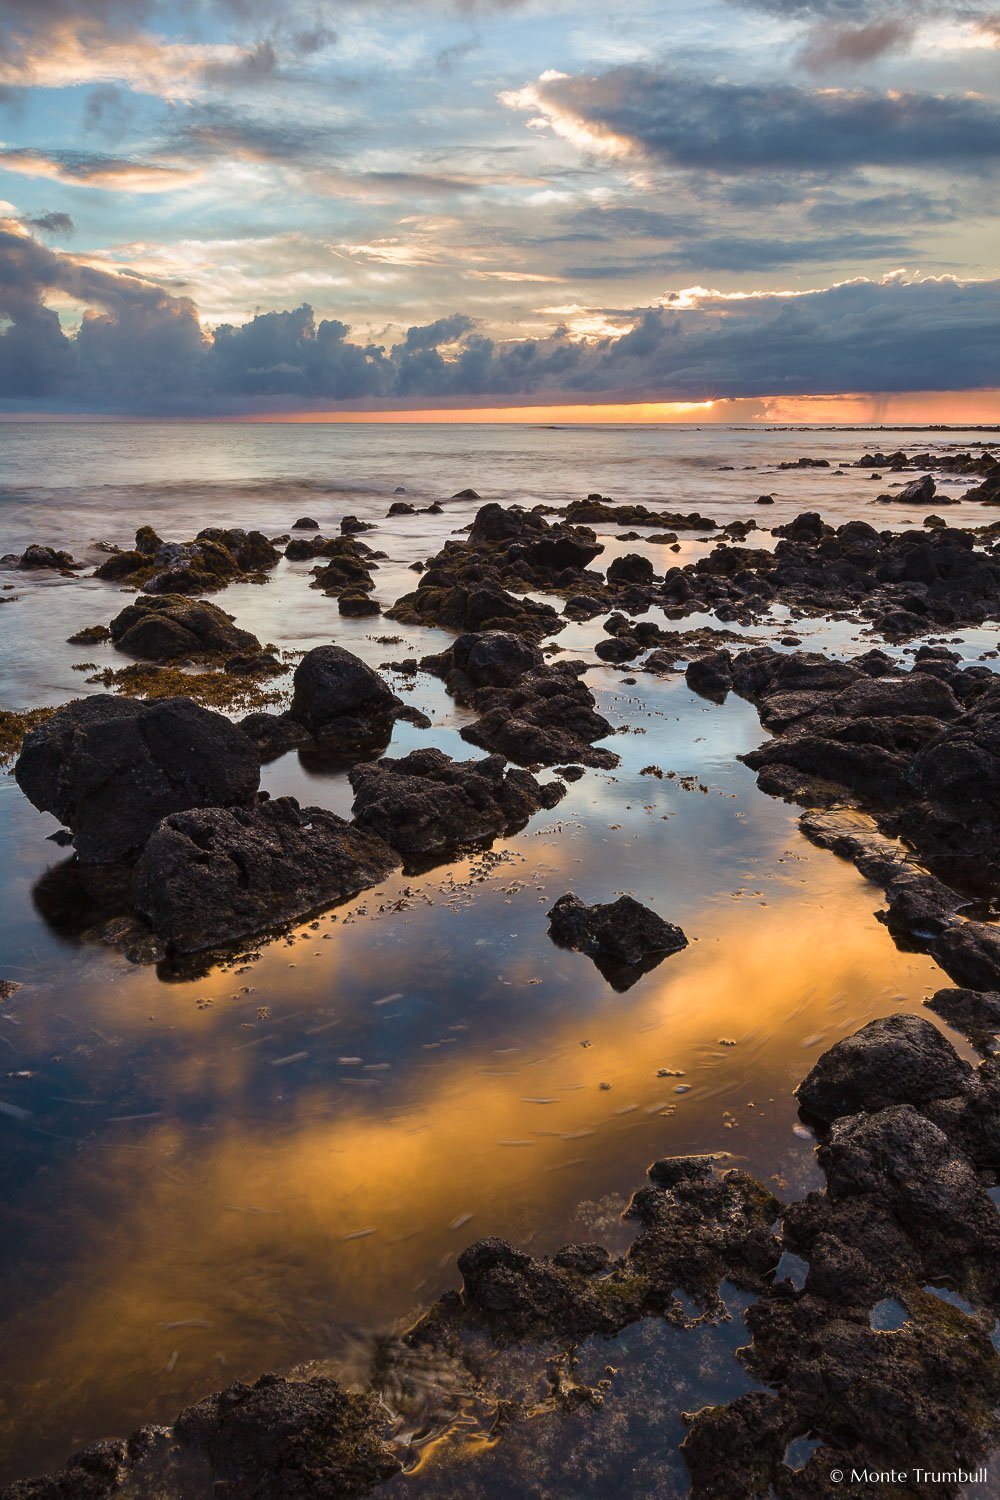 MT-20131206-174743-0142-Poipu-Beach-Kauai-Hawaii-sunset-rocks.jpg